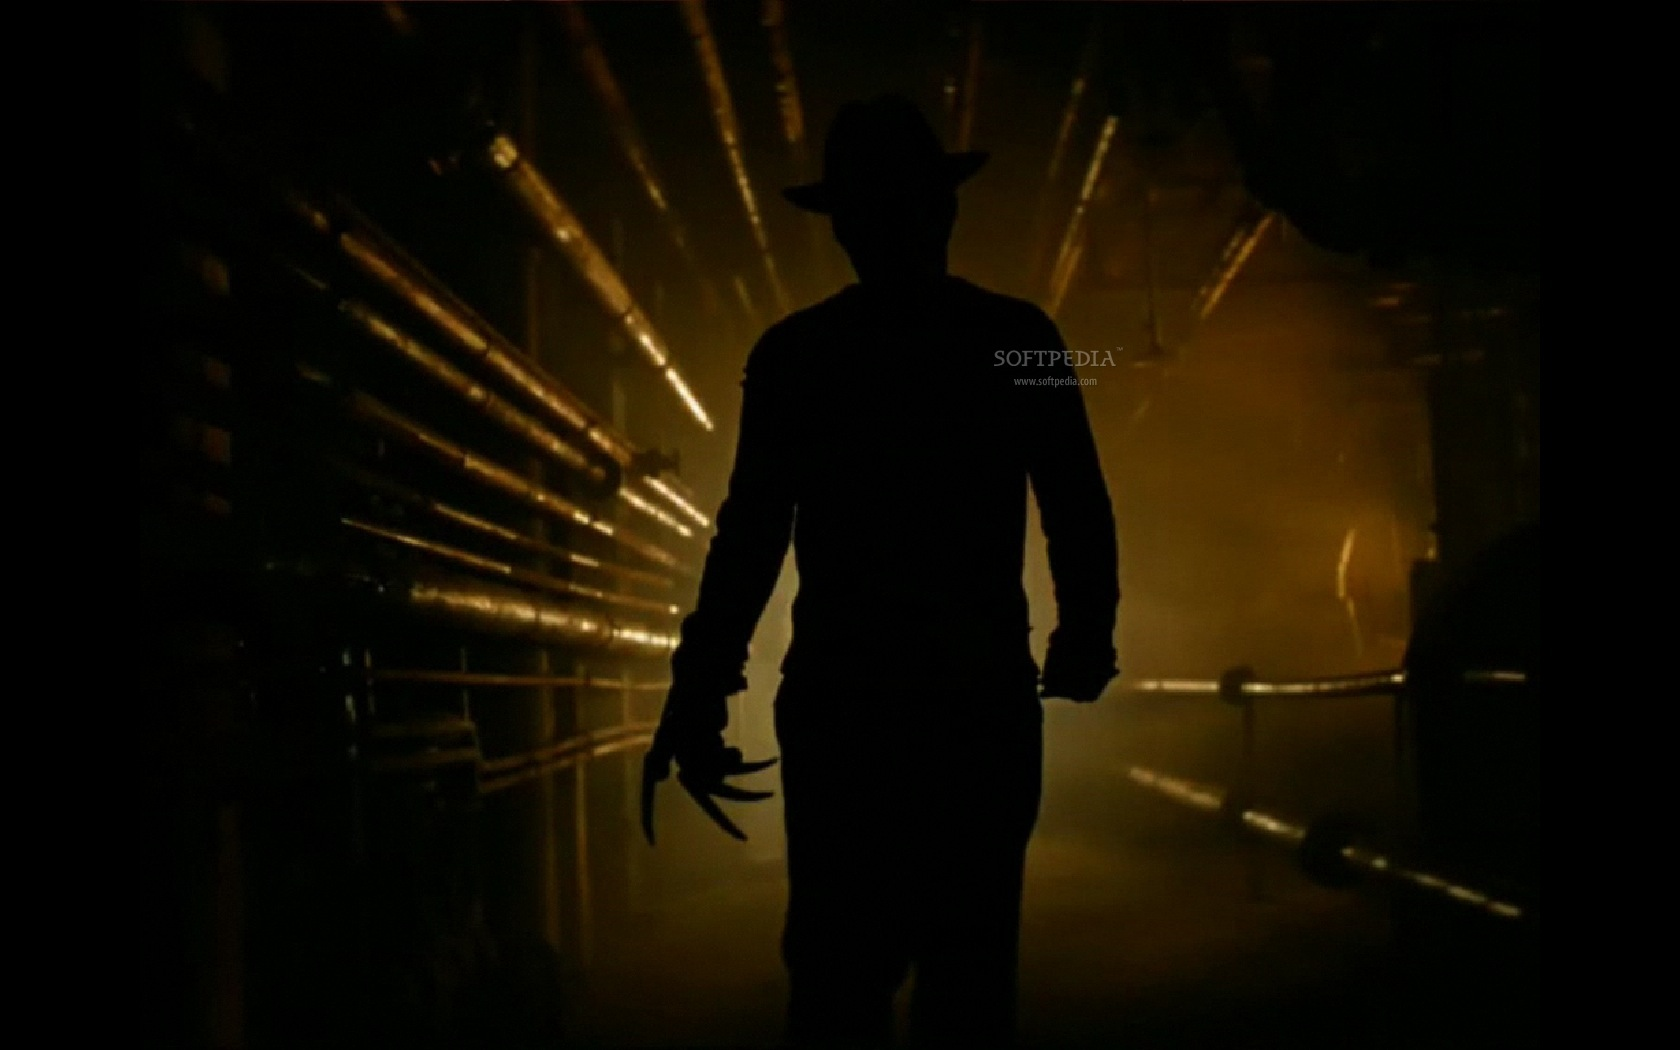 Nightmare On Elm St Quotes: Nightmare On Elm Street Quotes. QuotesGram